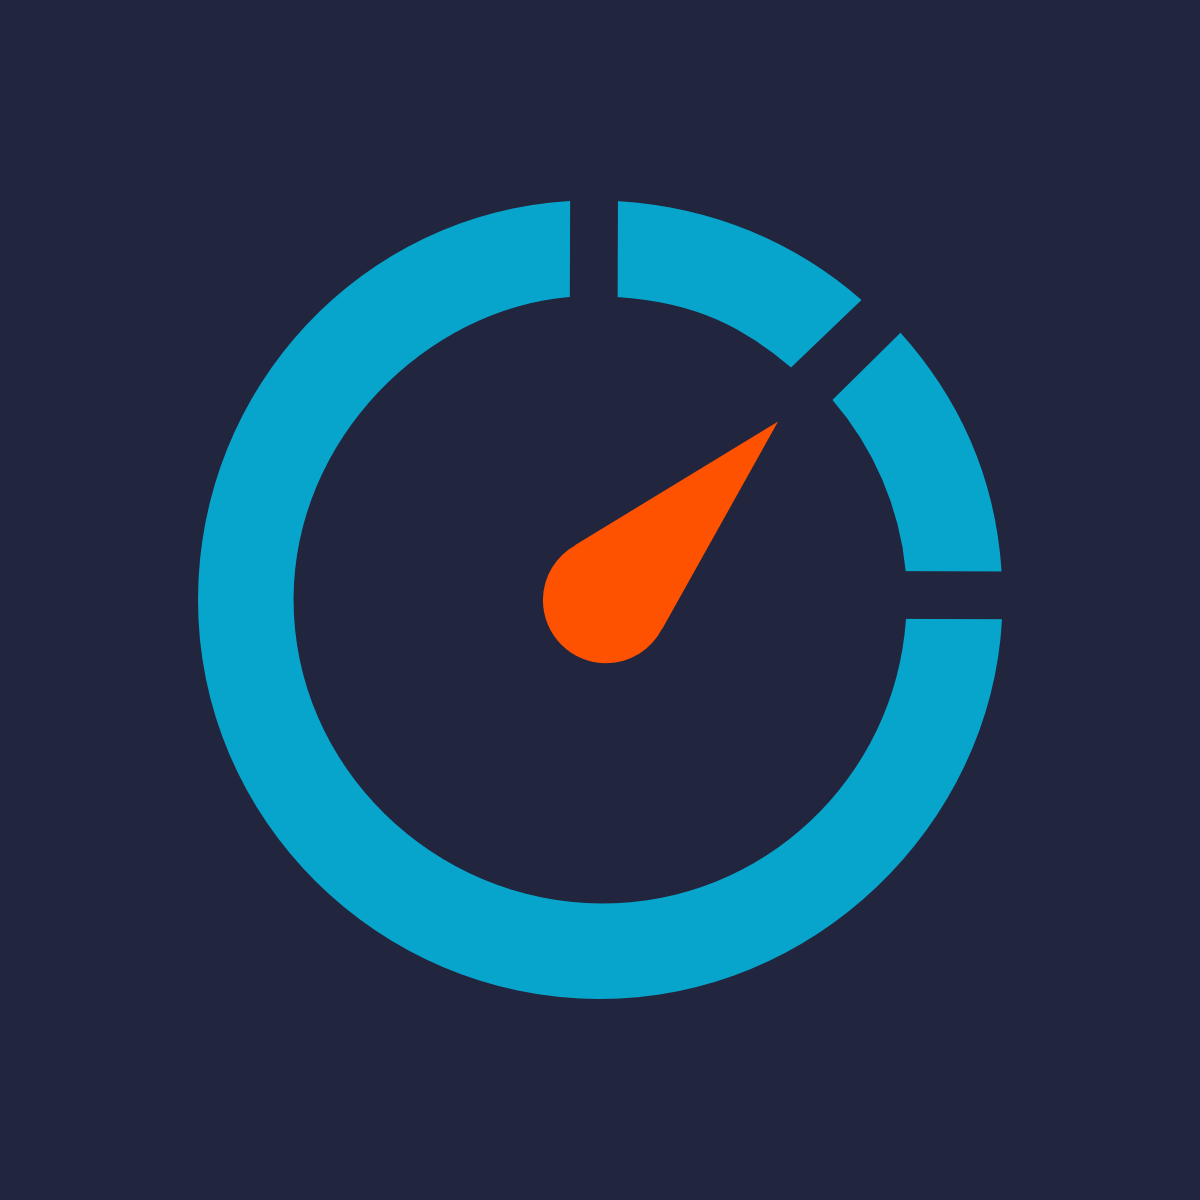 Shopify Delivery Time app by Orville andrew labs